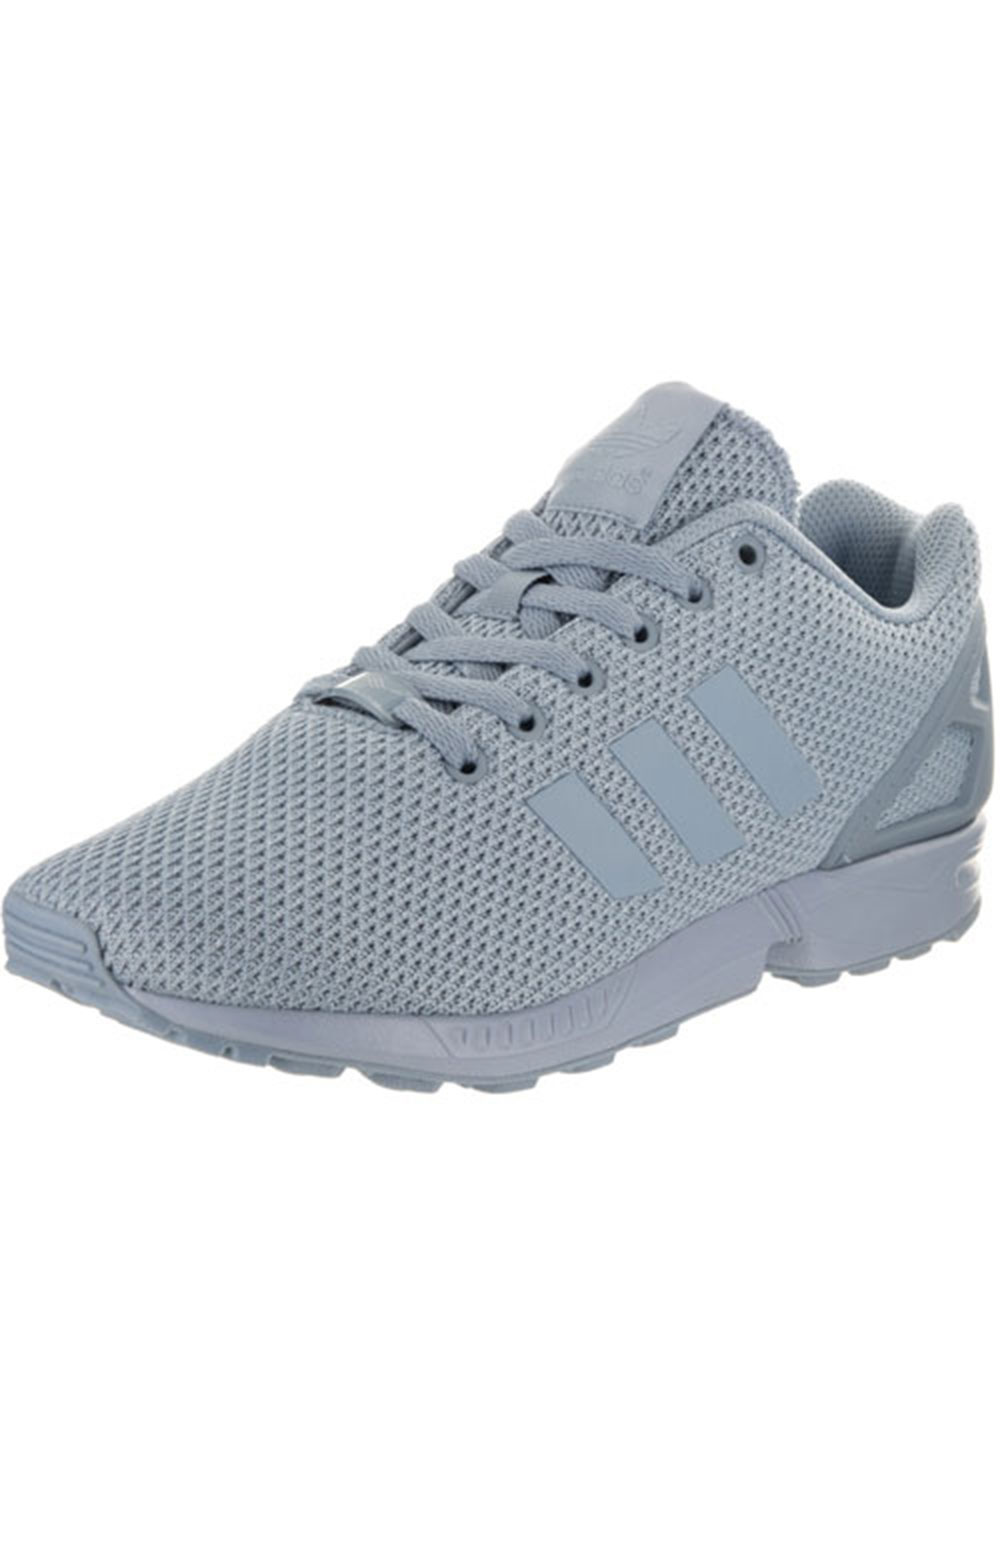 (BB2160) ZX Flux Shoe - Tactile Blue